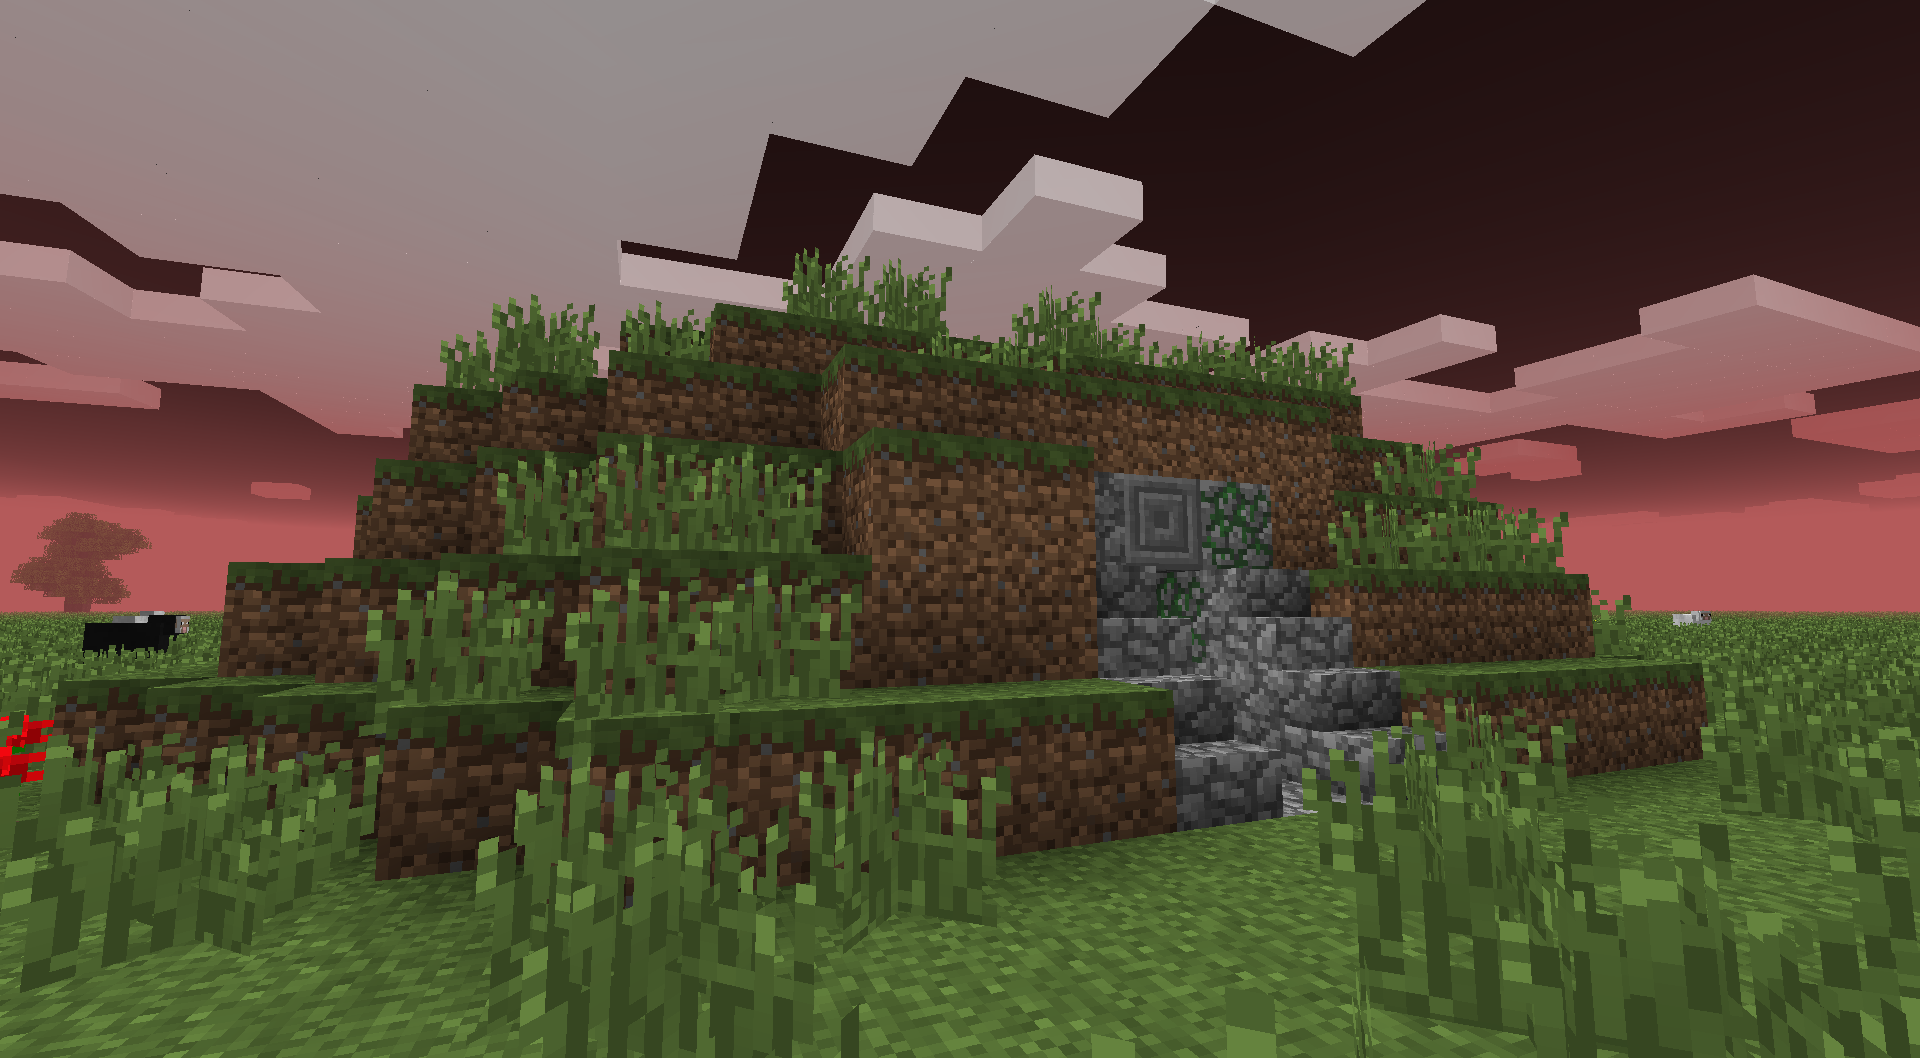 Minecraft Chat Thread v71: Pigs Are Better  - Games